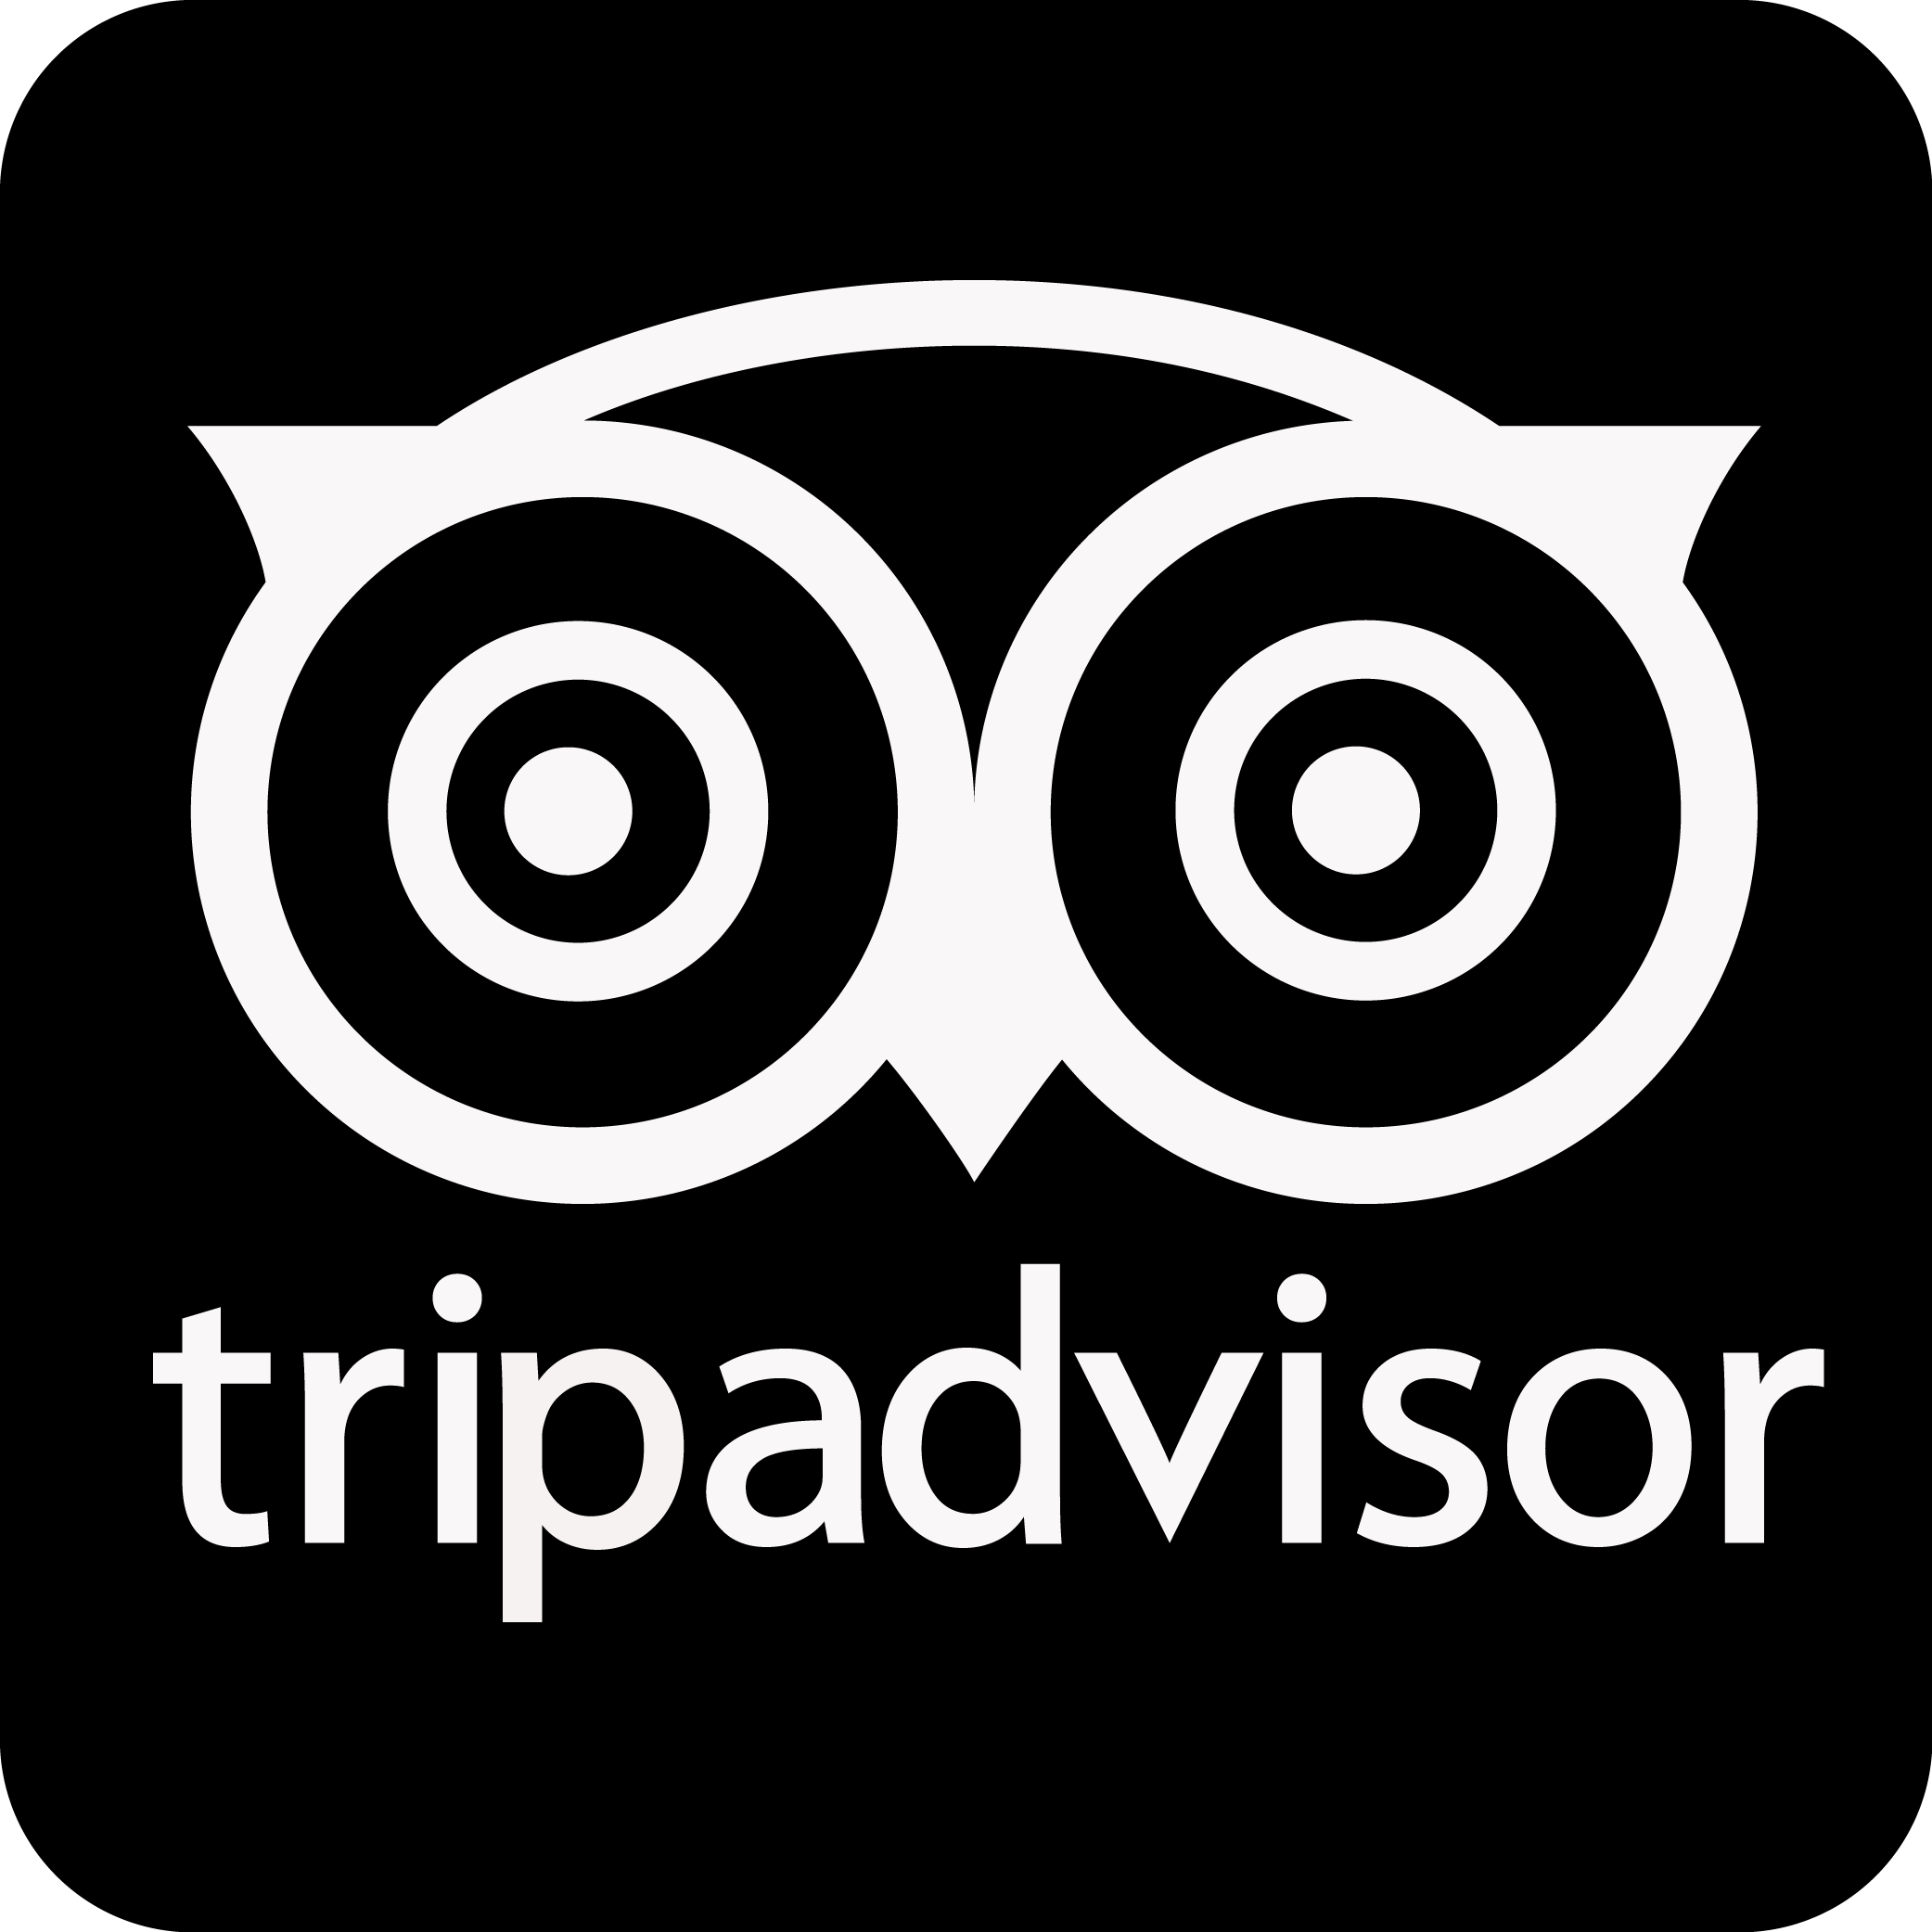 black tripadvisor icon 12017 free icons and png backgrounds